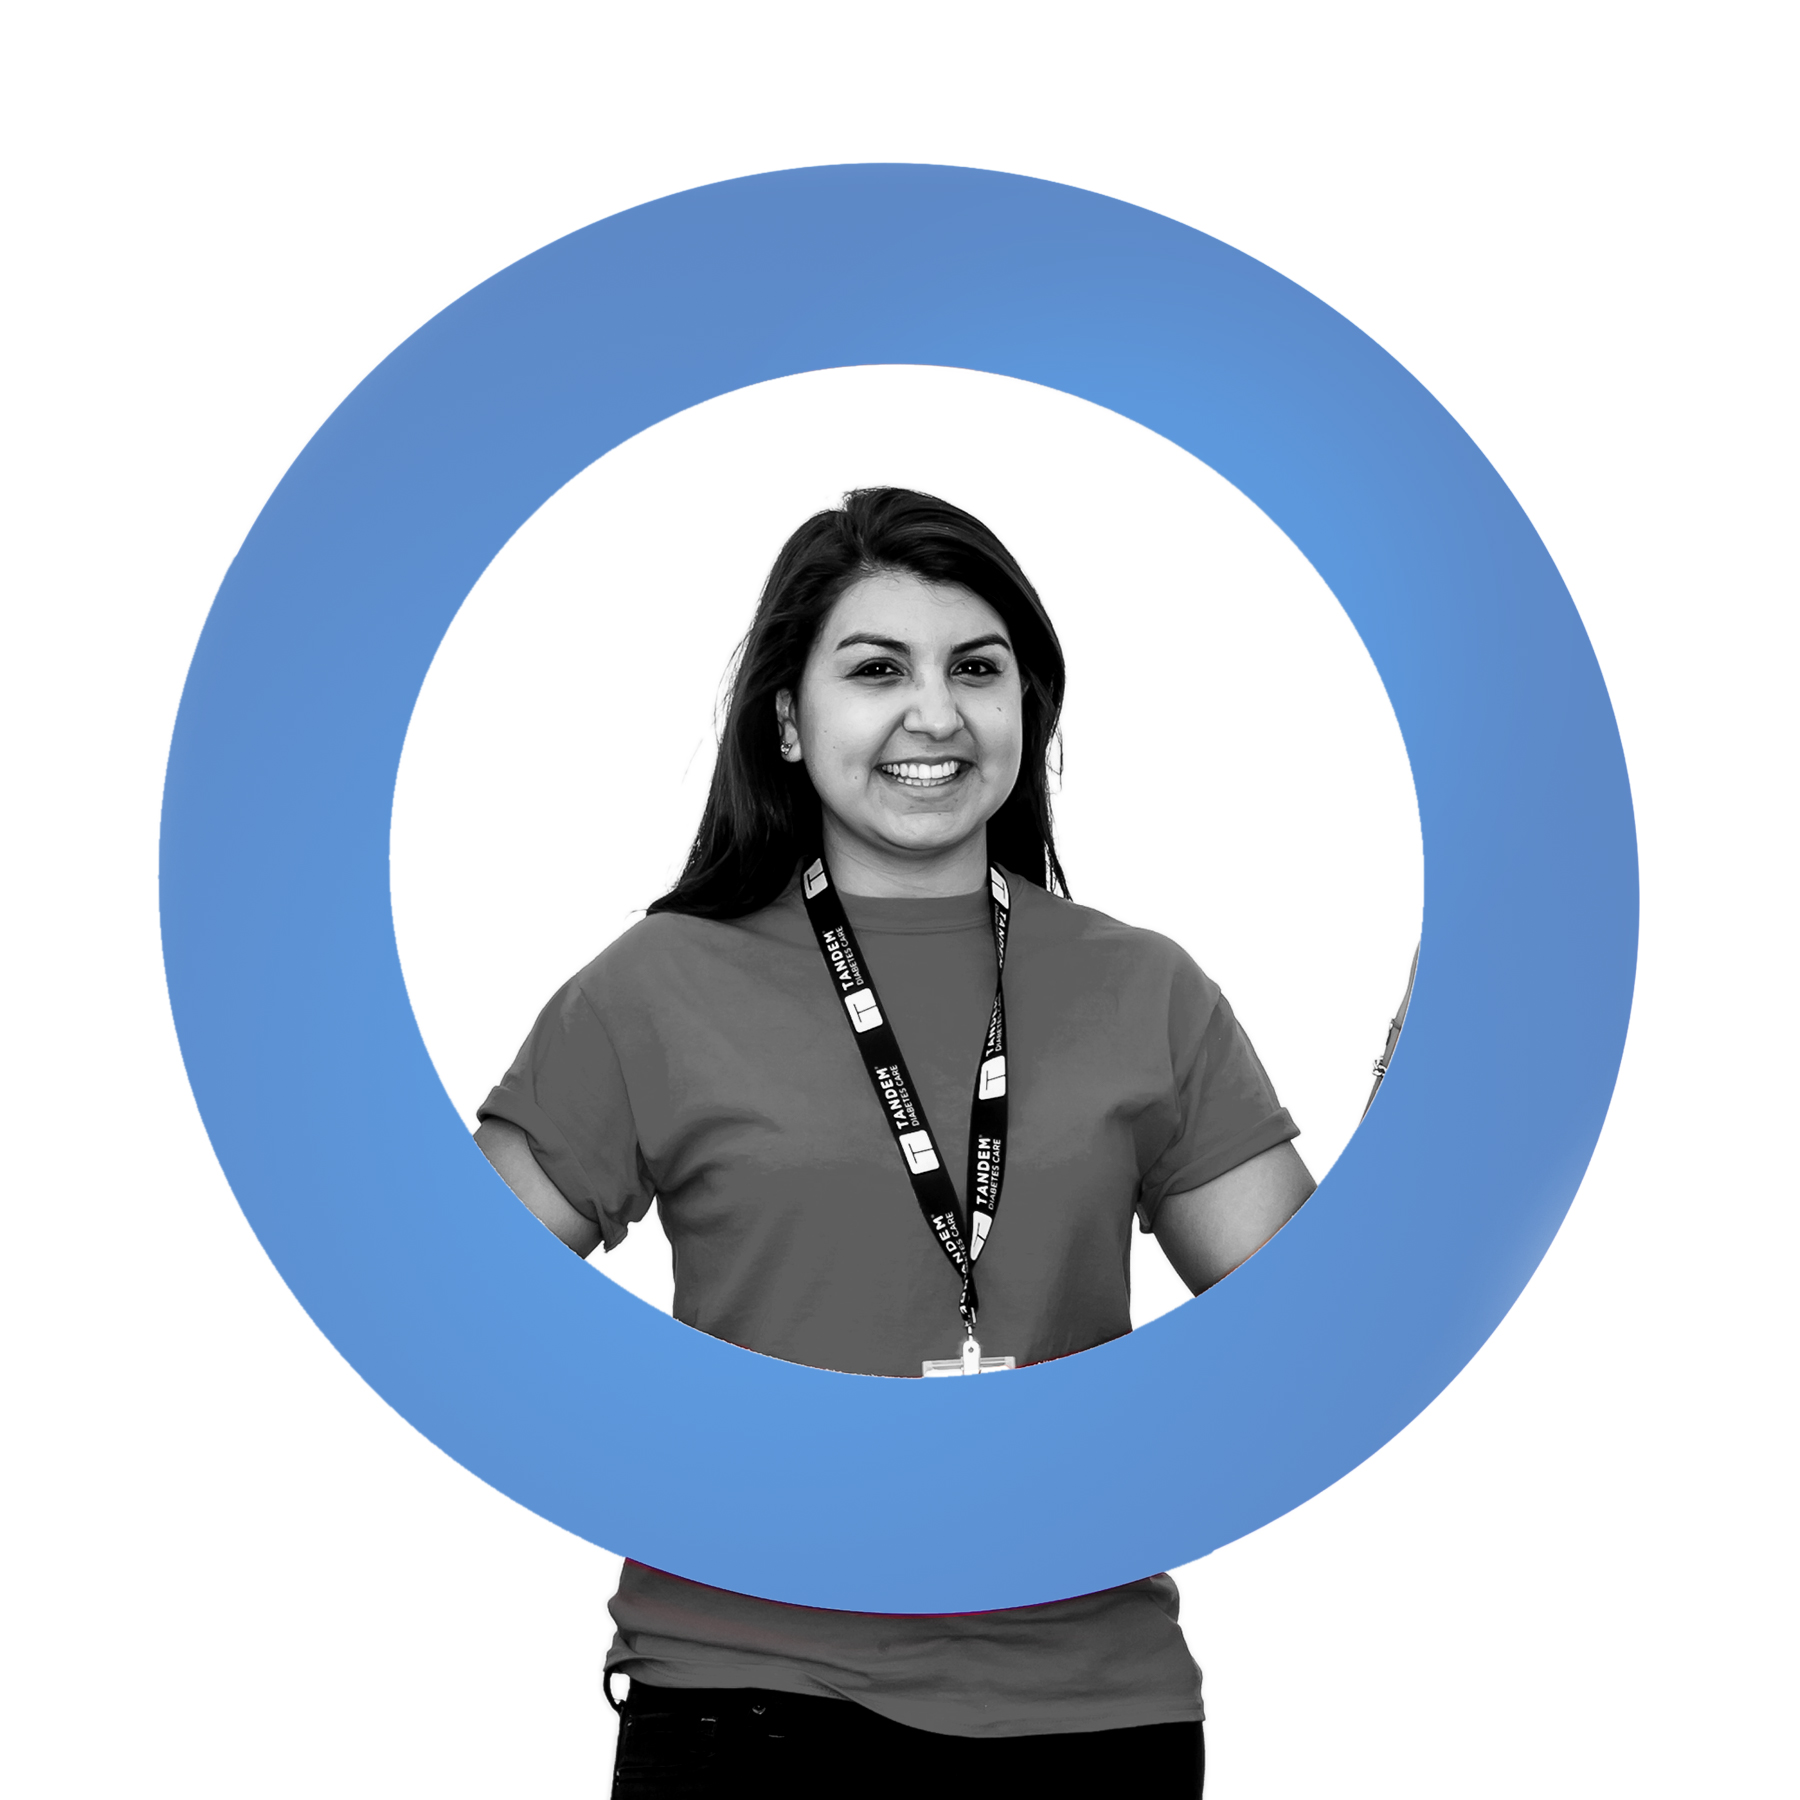 Blue_Circle_TouchUp_Amy_HR_HiRes_FINAL